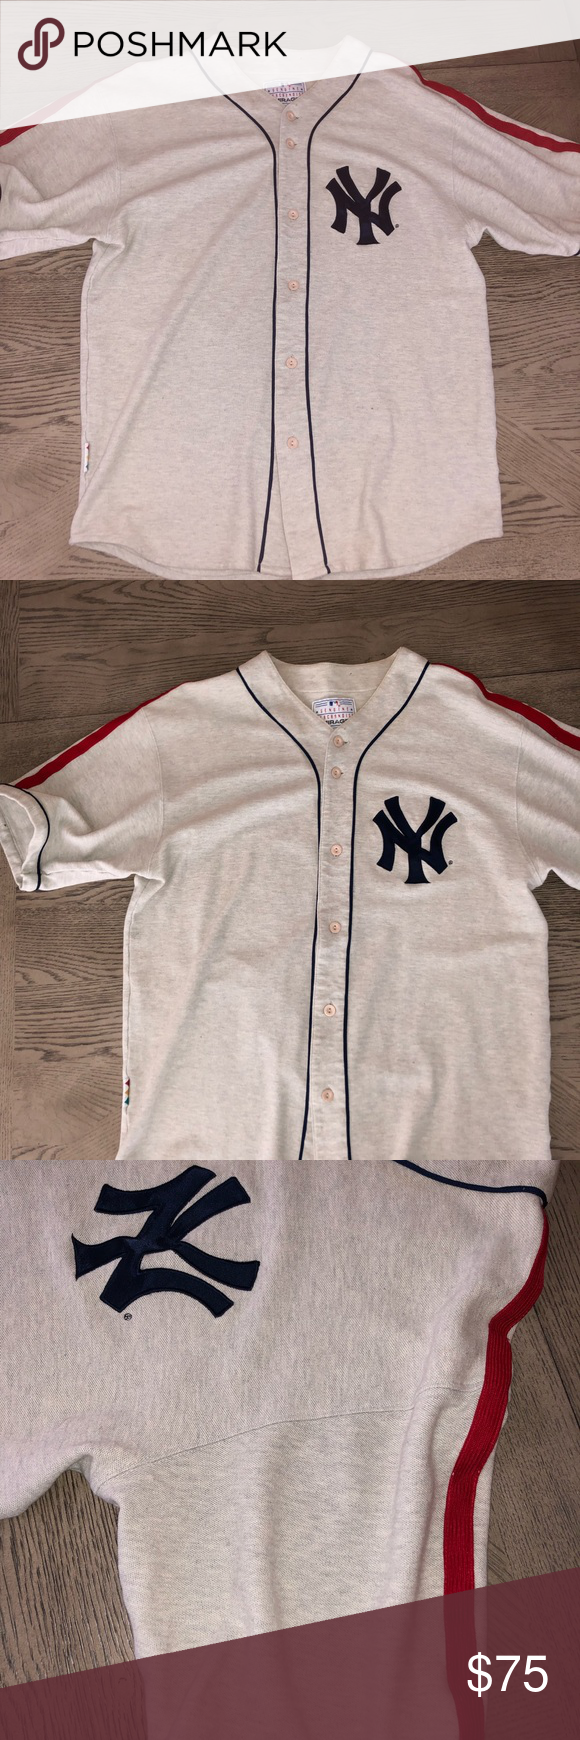 Rare Ny Yankees Vintage Cooperstown Classic Jersey Cooperstown Ny Yankees Clothes Design